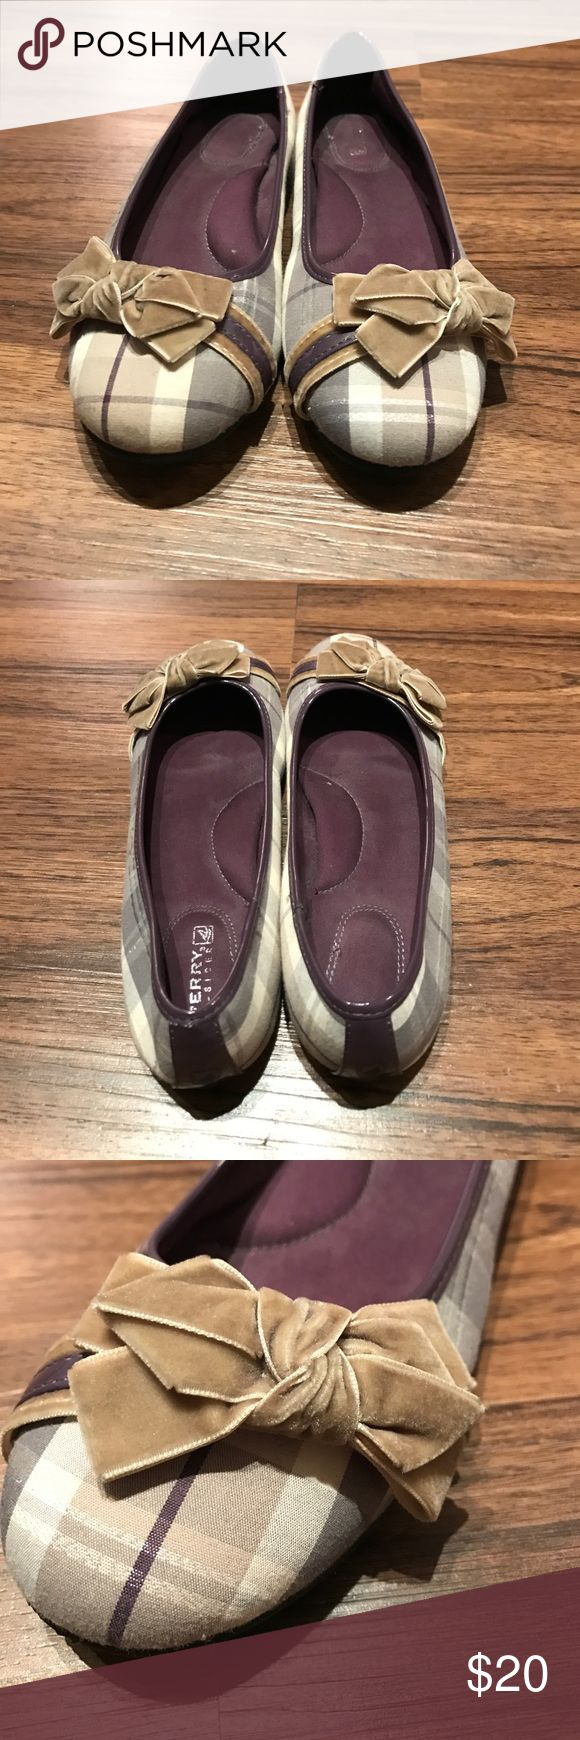 🎉SALE🎉 Sperry flats Worn only a handful of times! Unique find! Purple/gray plaid pattern with beige bows along the toe. Sperry Shoes Flats & Loafers